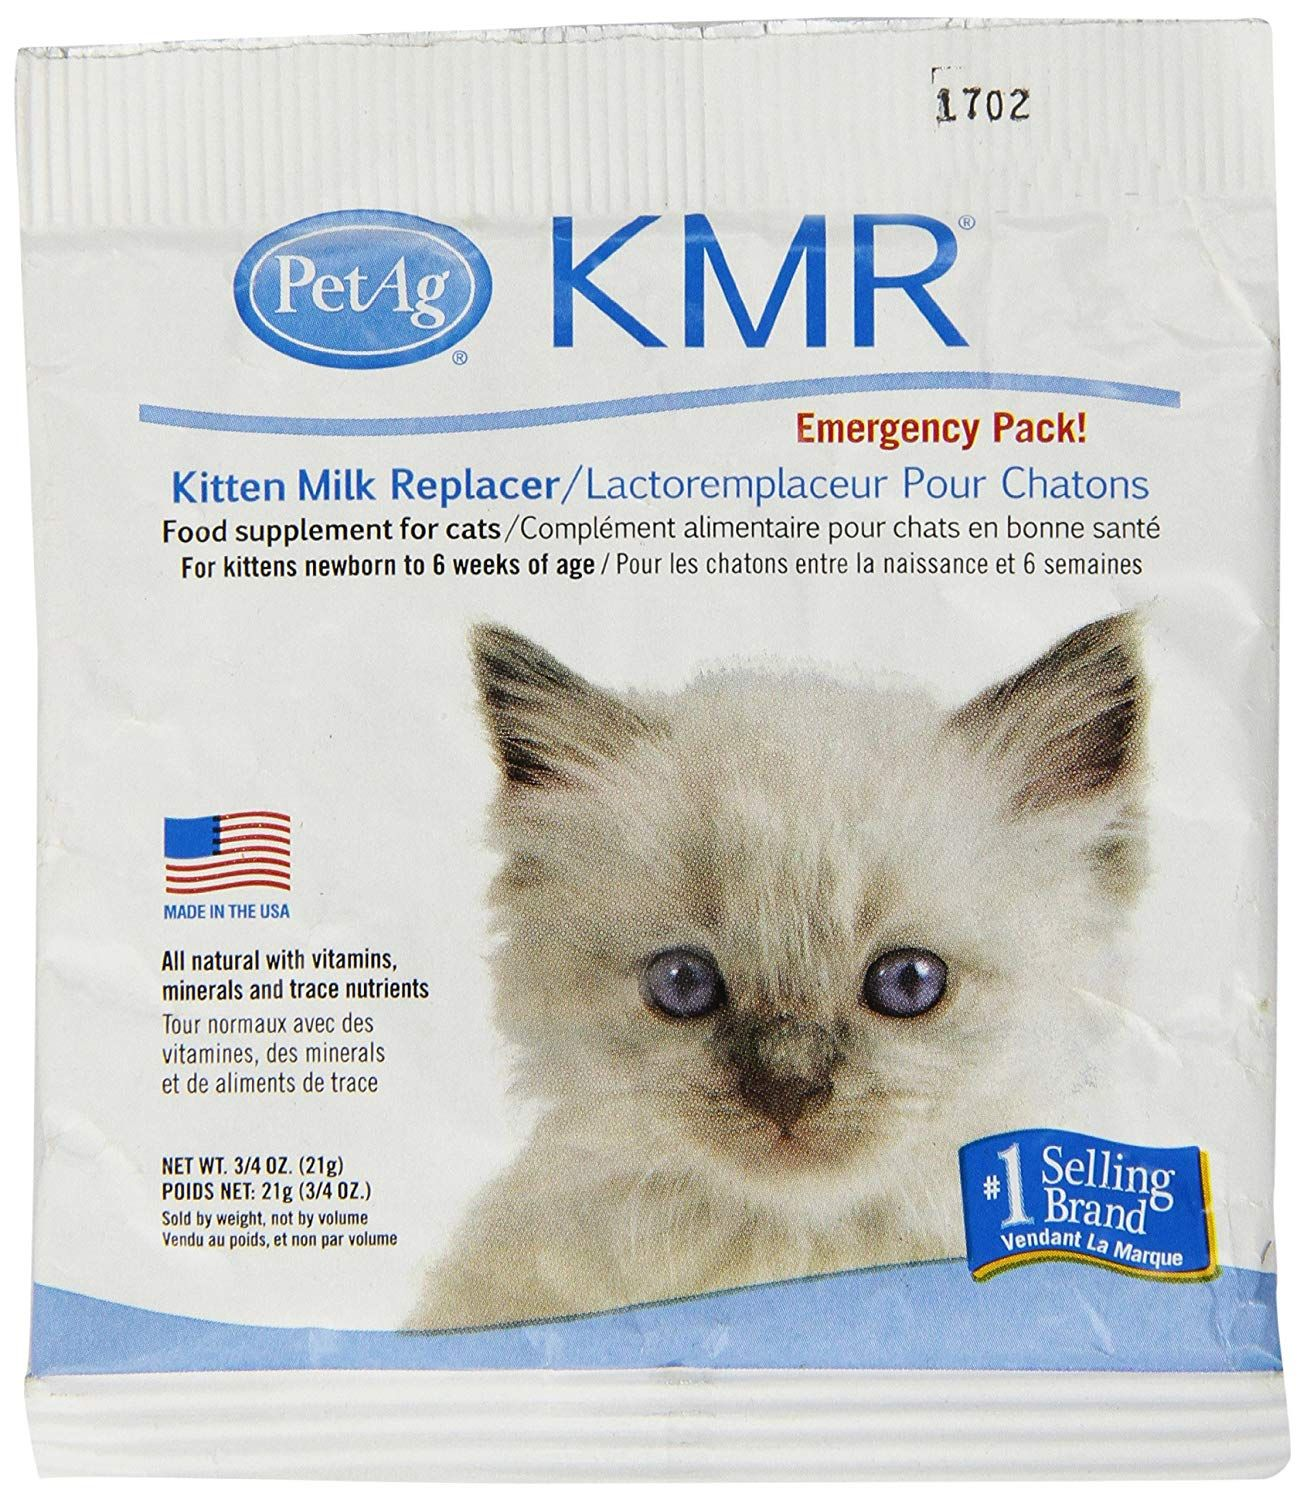 Petag Products Kmr Kitten Milk Replacer Thanks A Lot For Viewing Our Image This Is Our Affiliate Link Doghealthsupp Dog Milk Emergency Packs Dog Odor